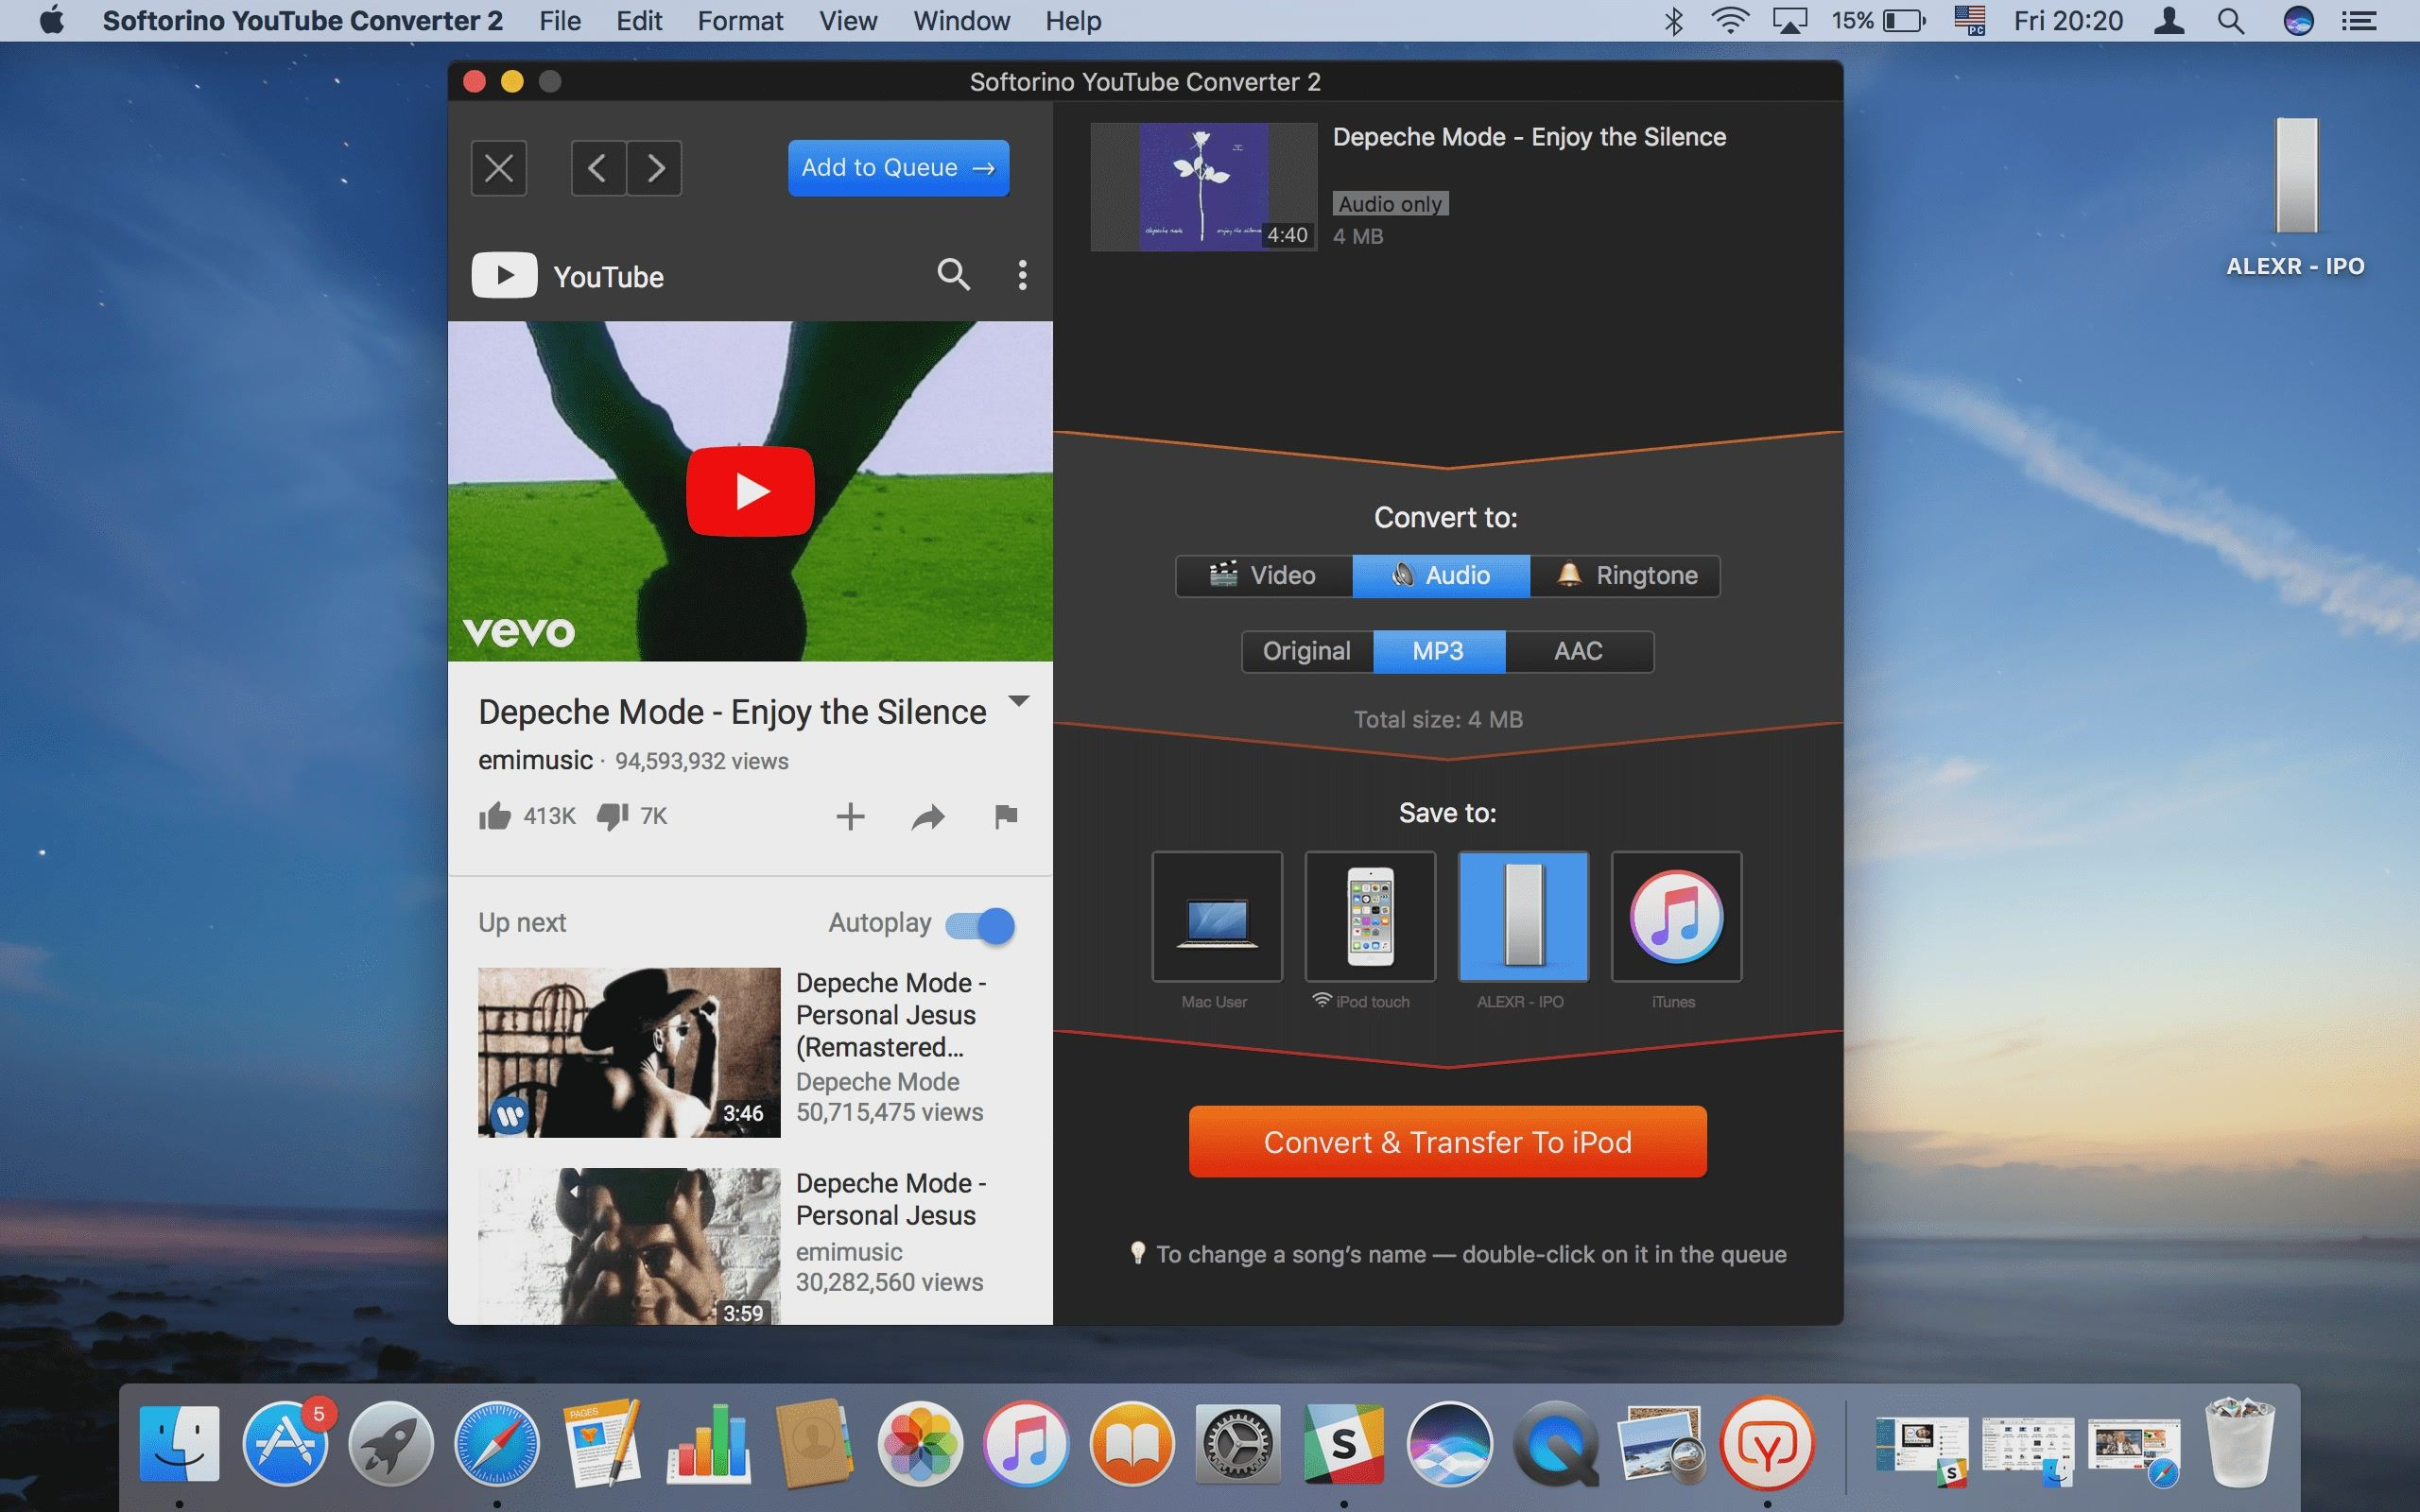 YouTube to iPod Converter - How to Download Music from YouTube to